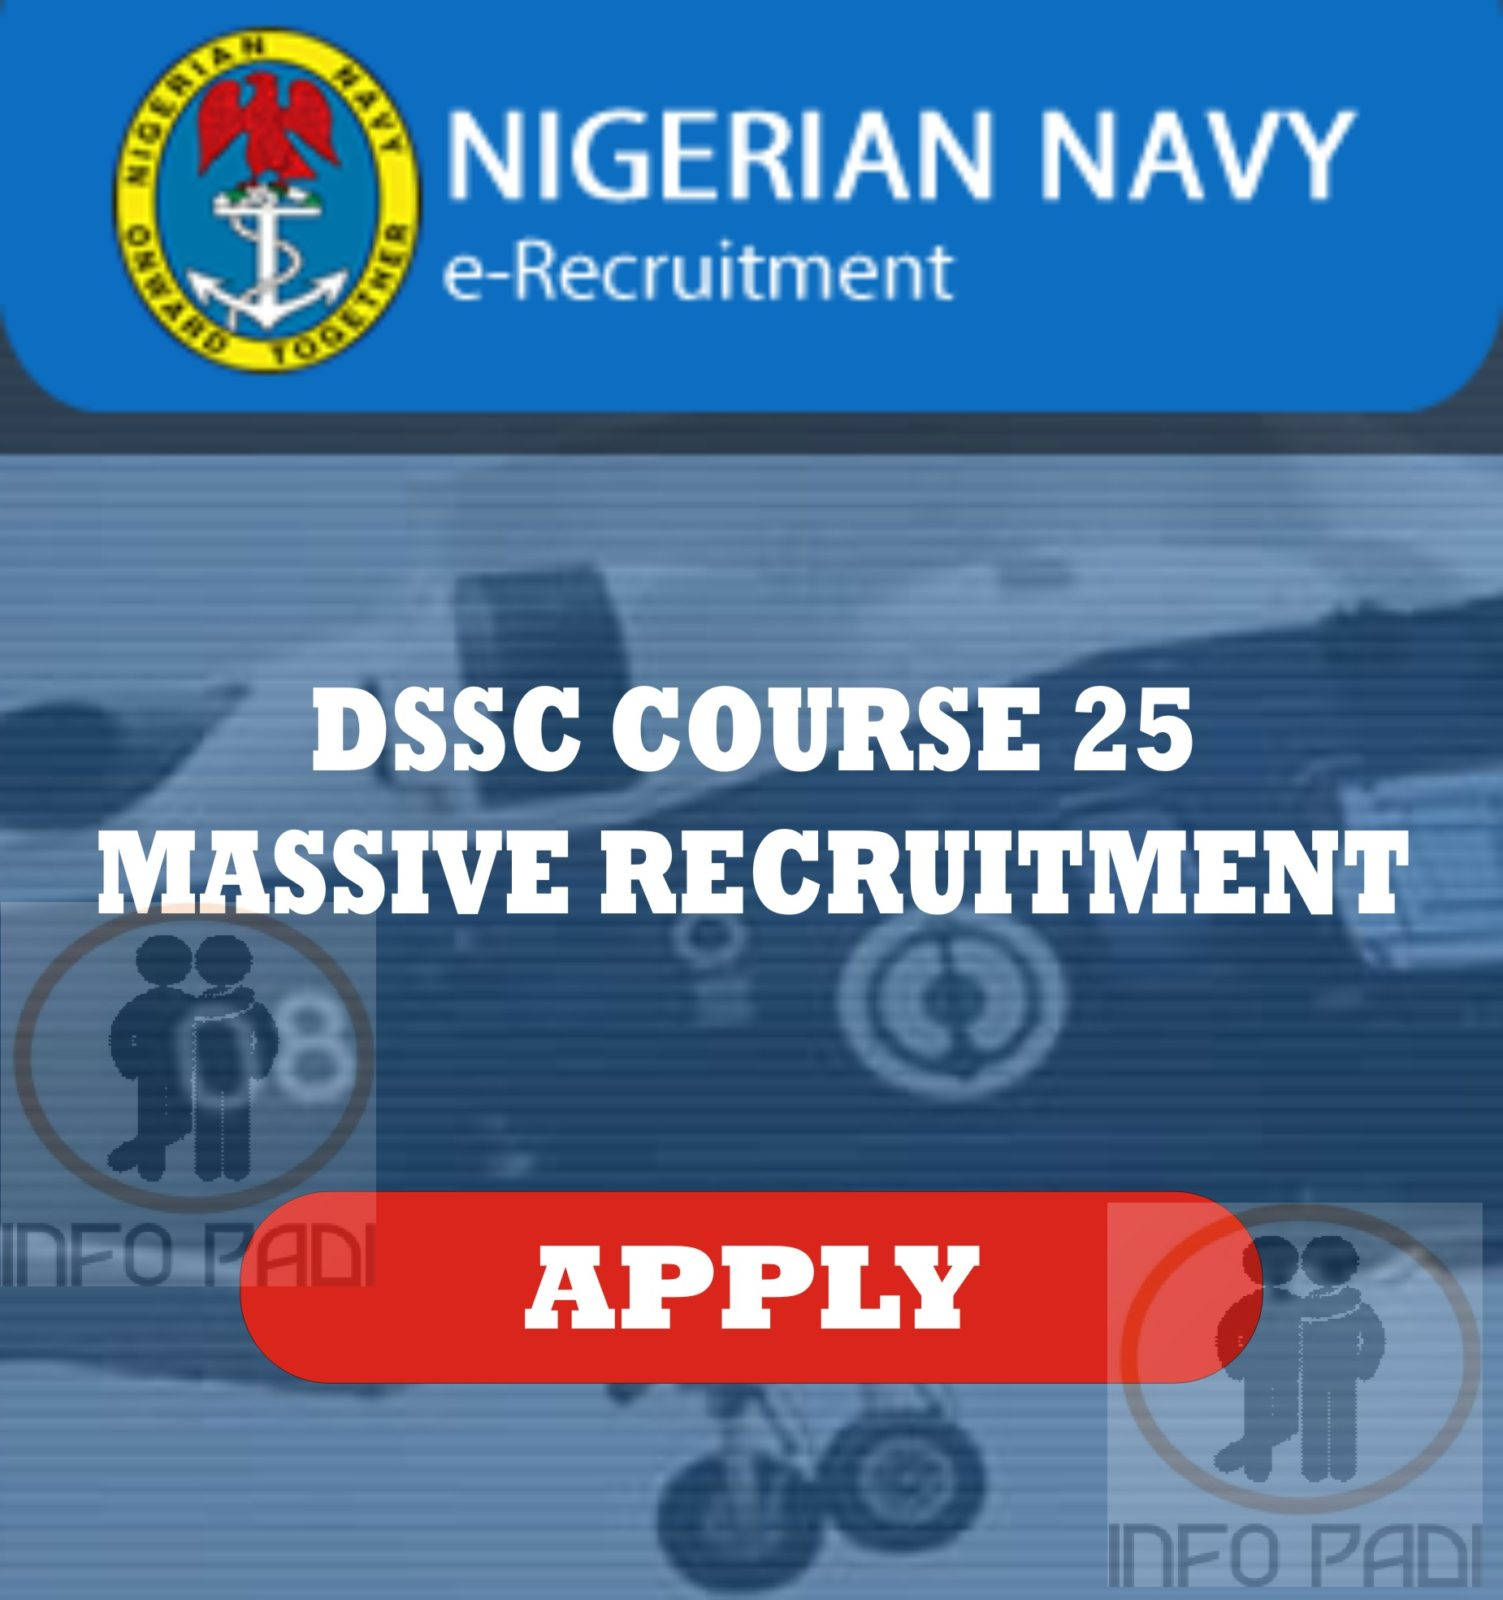 Nigerian Navy DSSC Course 25 Recruitment for Consultants 2018- Apply Here